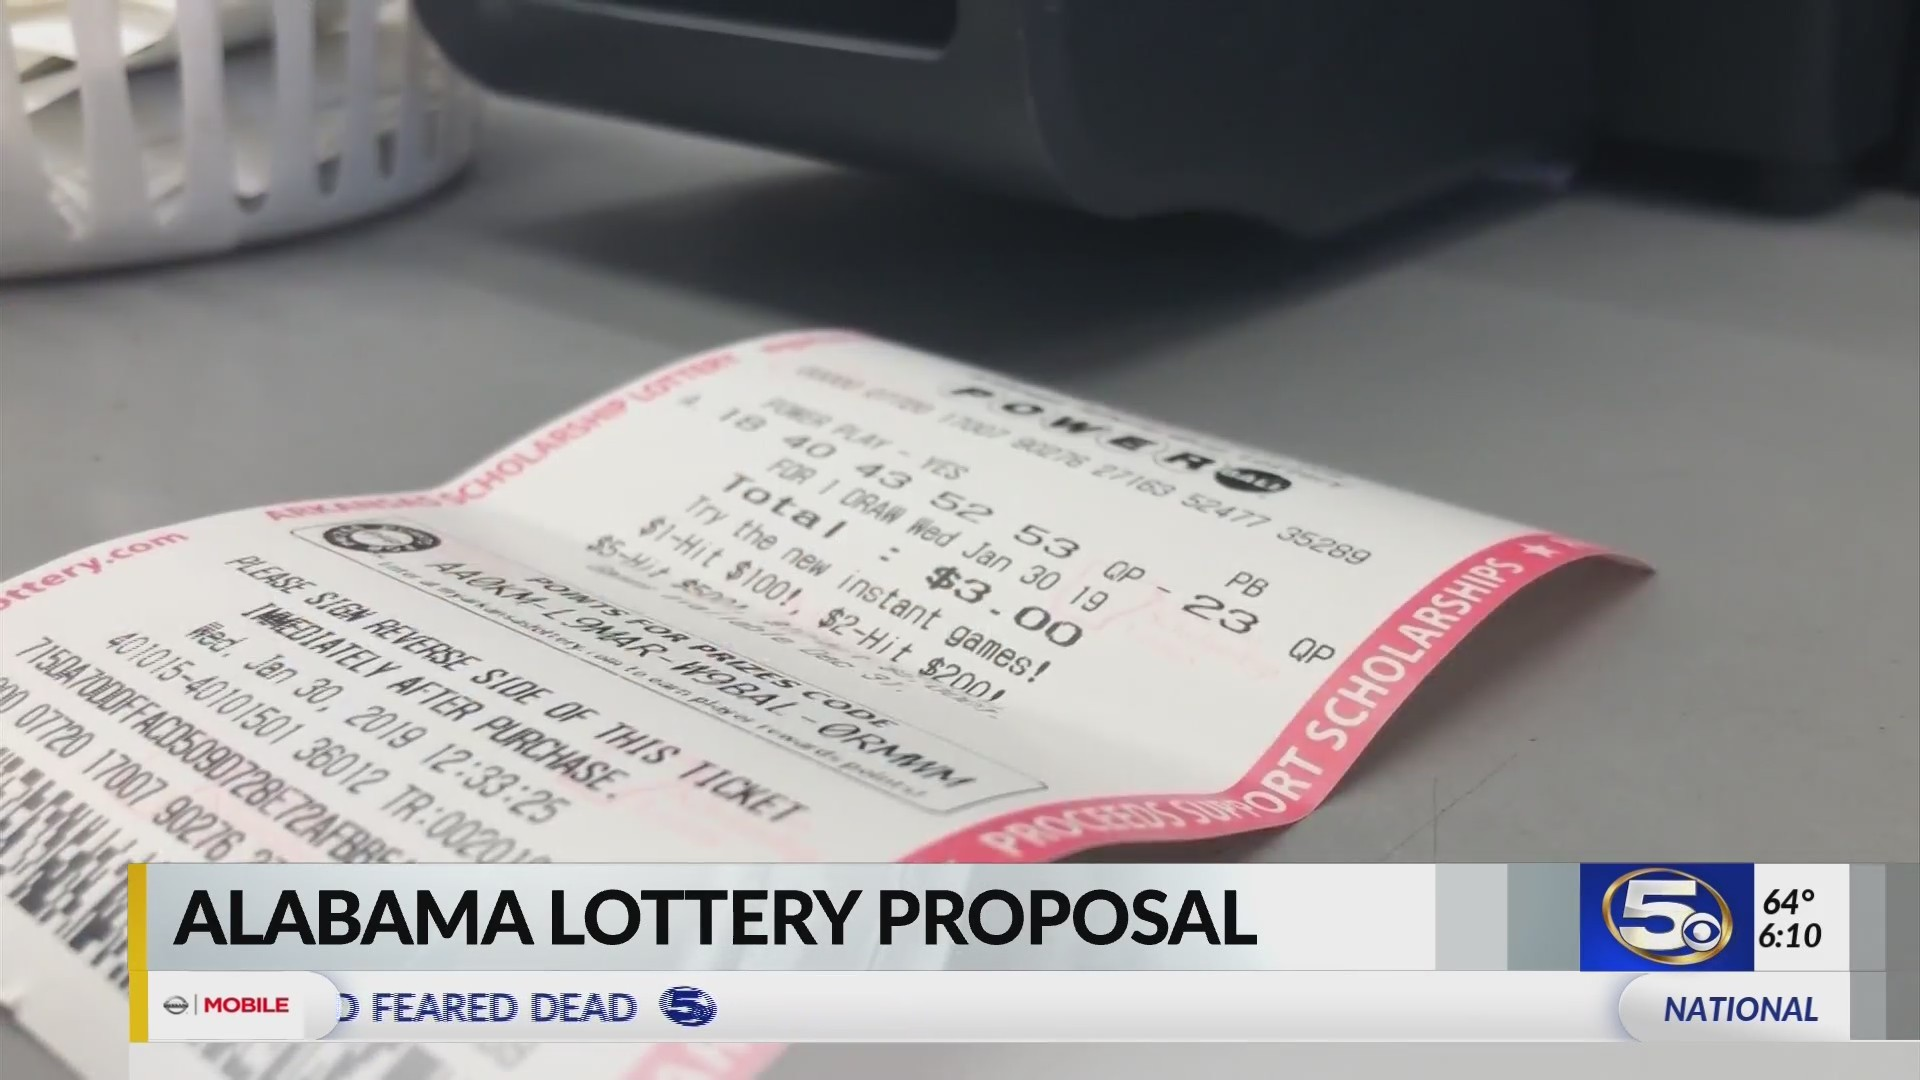 Powerball Draws Several Alabama Players As The Lottery Debate Begins